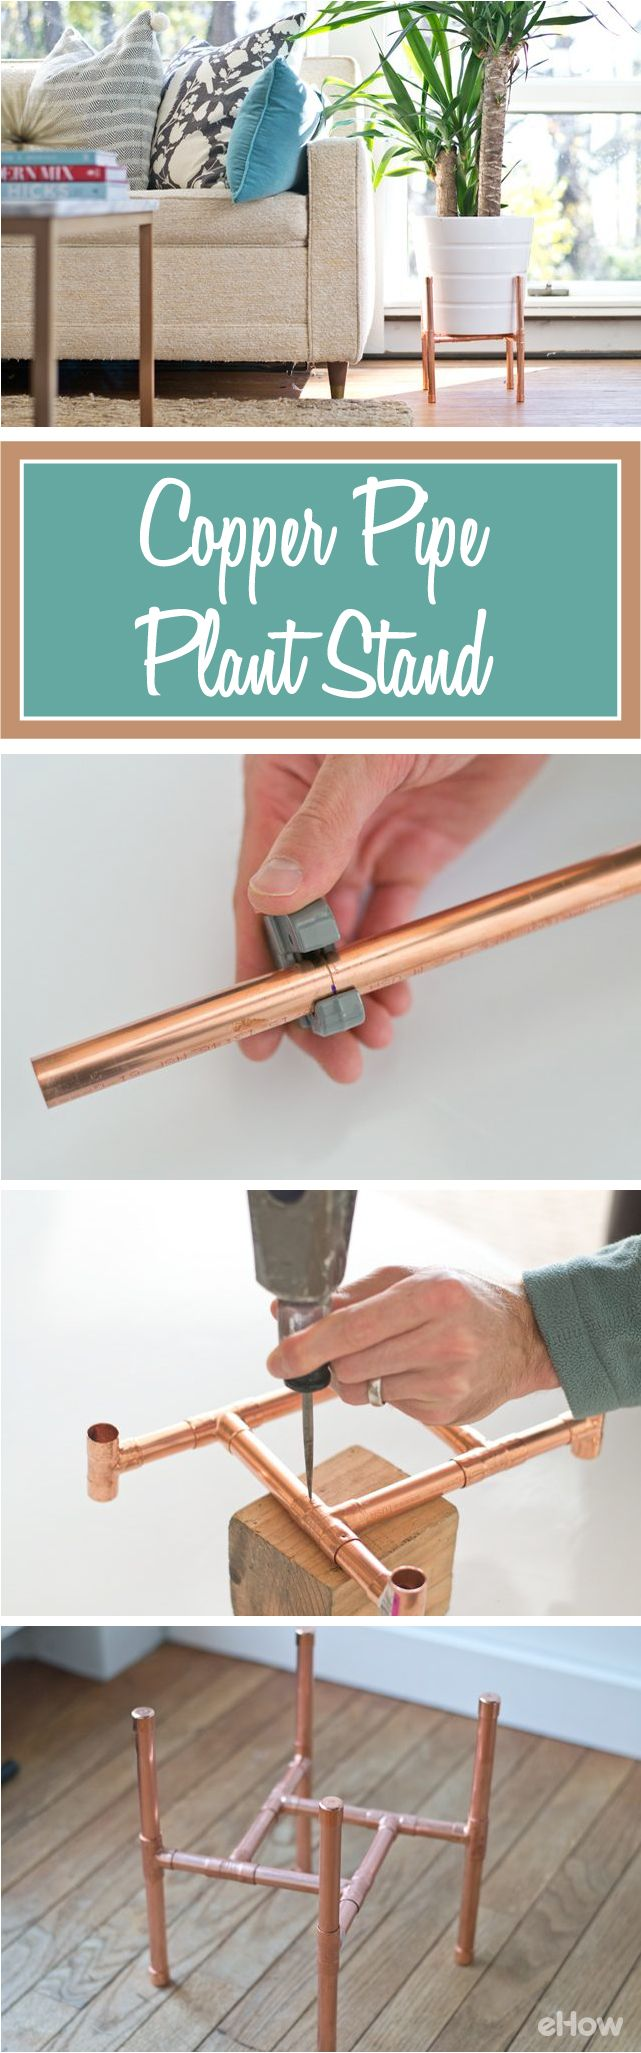 DIY Raised Copper Pipe Plant Stand | Mid-century modern, Pipes and ...